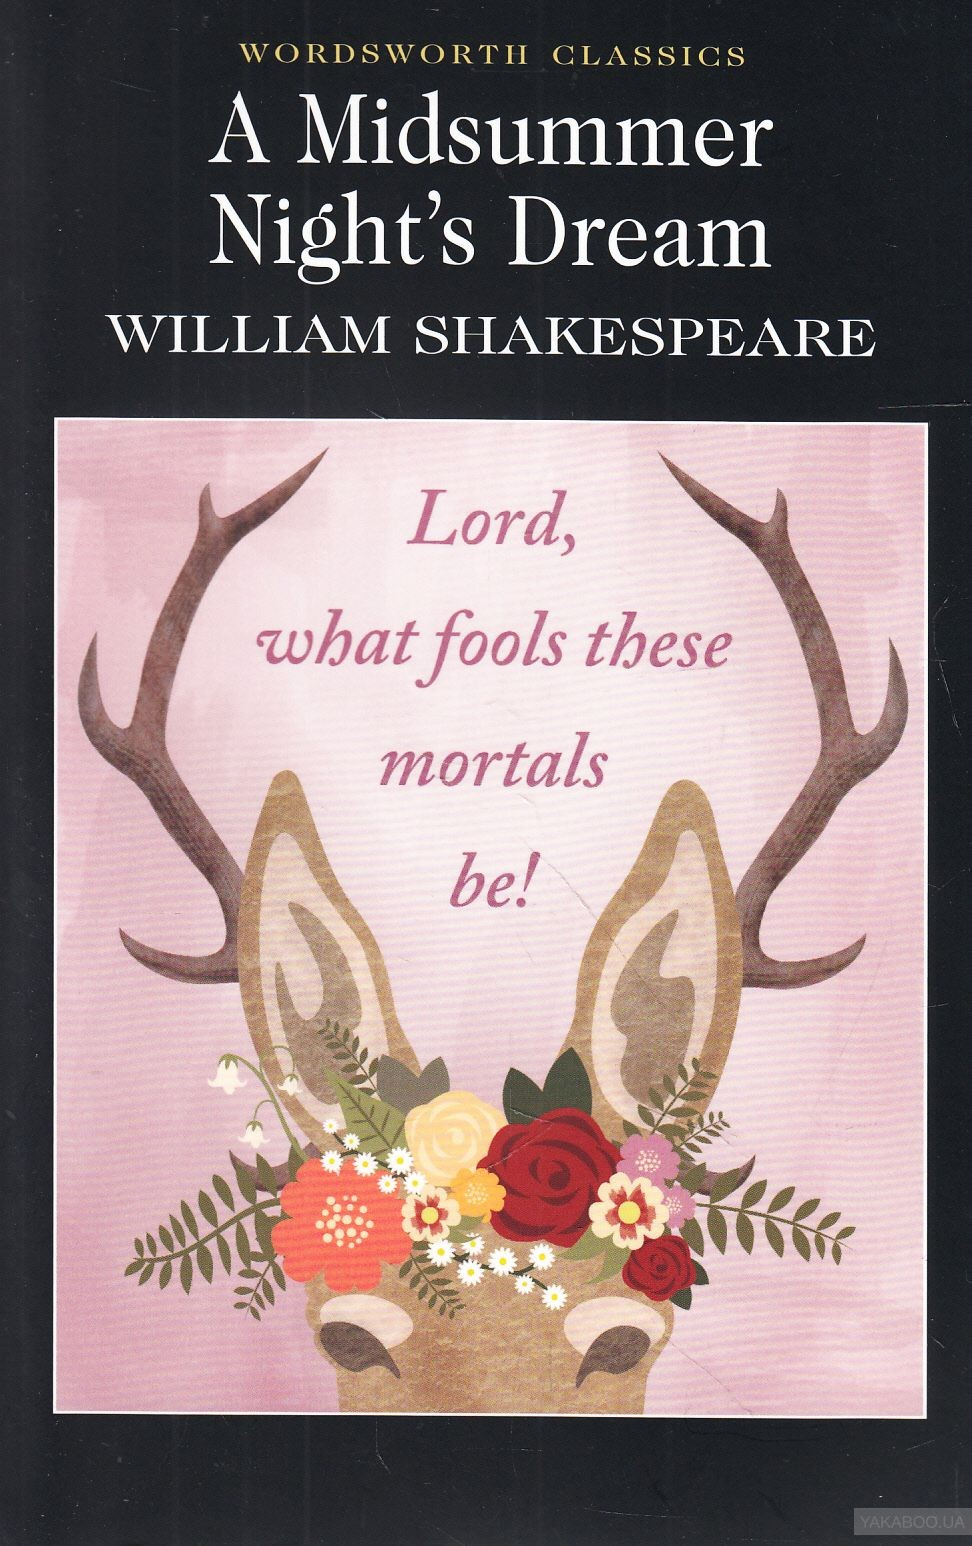 a comparison of chaucers the knights tale and shakespeares a midsummer nights dream Plot summary of shakespeare's a midsummer night's dream: midsummer's night's dream reply ella says: the winter's tale plot summary.